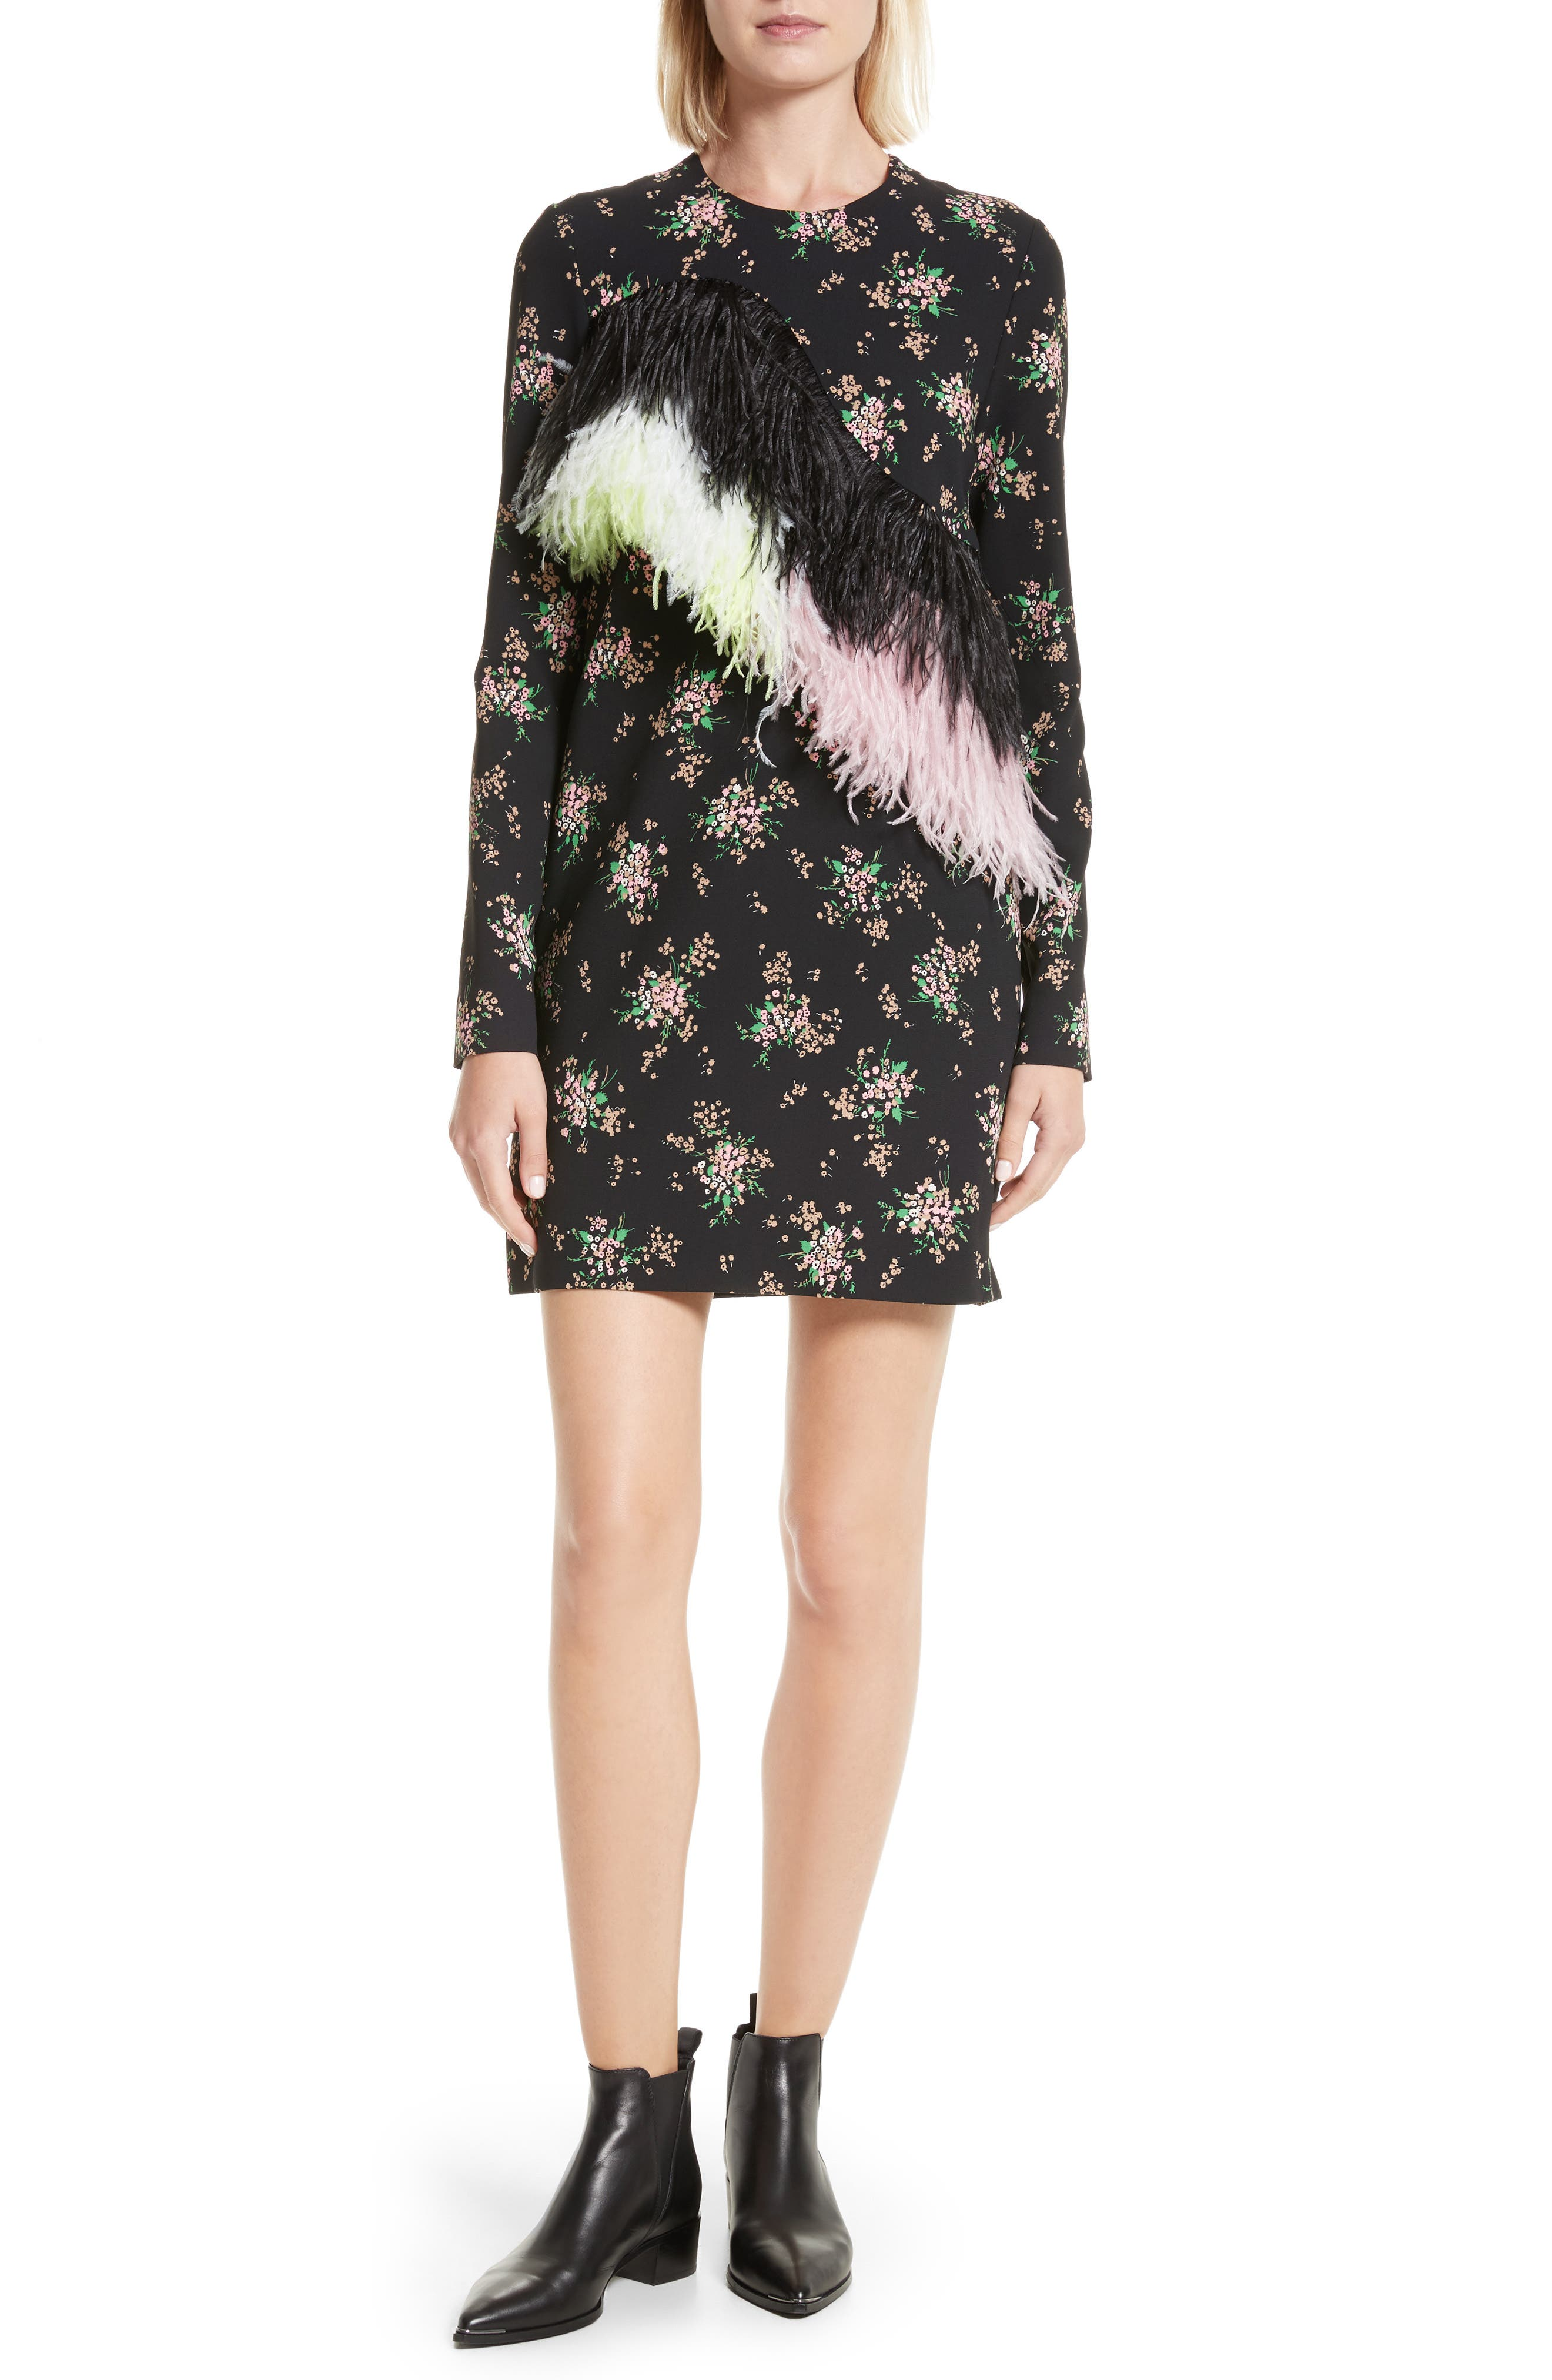 Alternate Image 1 Selected - MSGM Ostrich Feather Trim Floral Print Dress